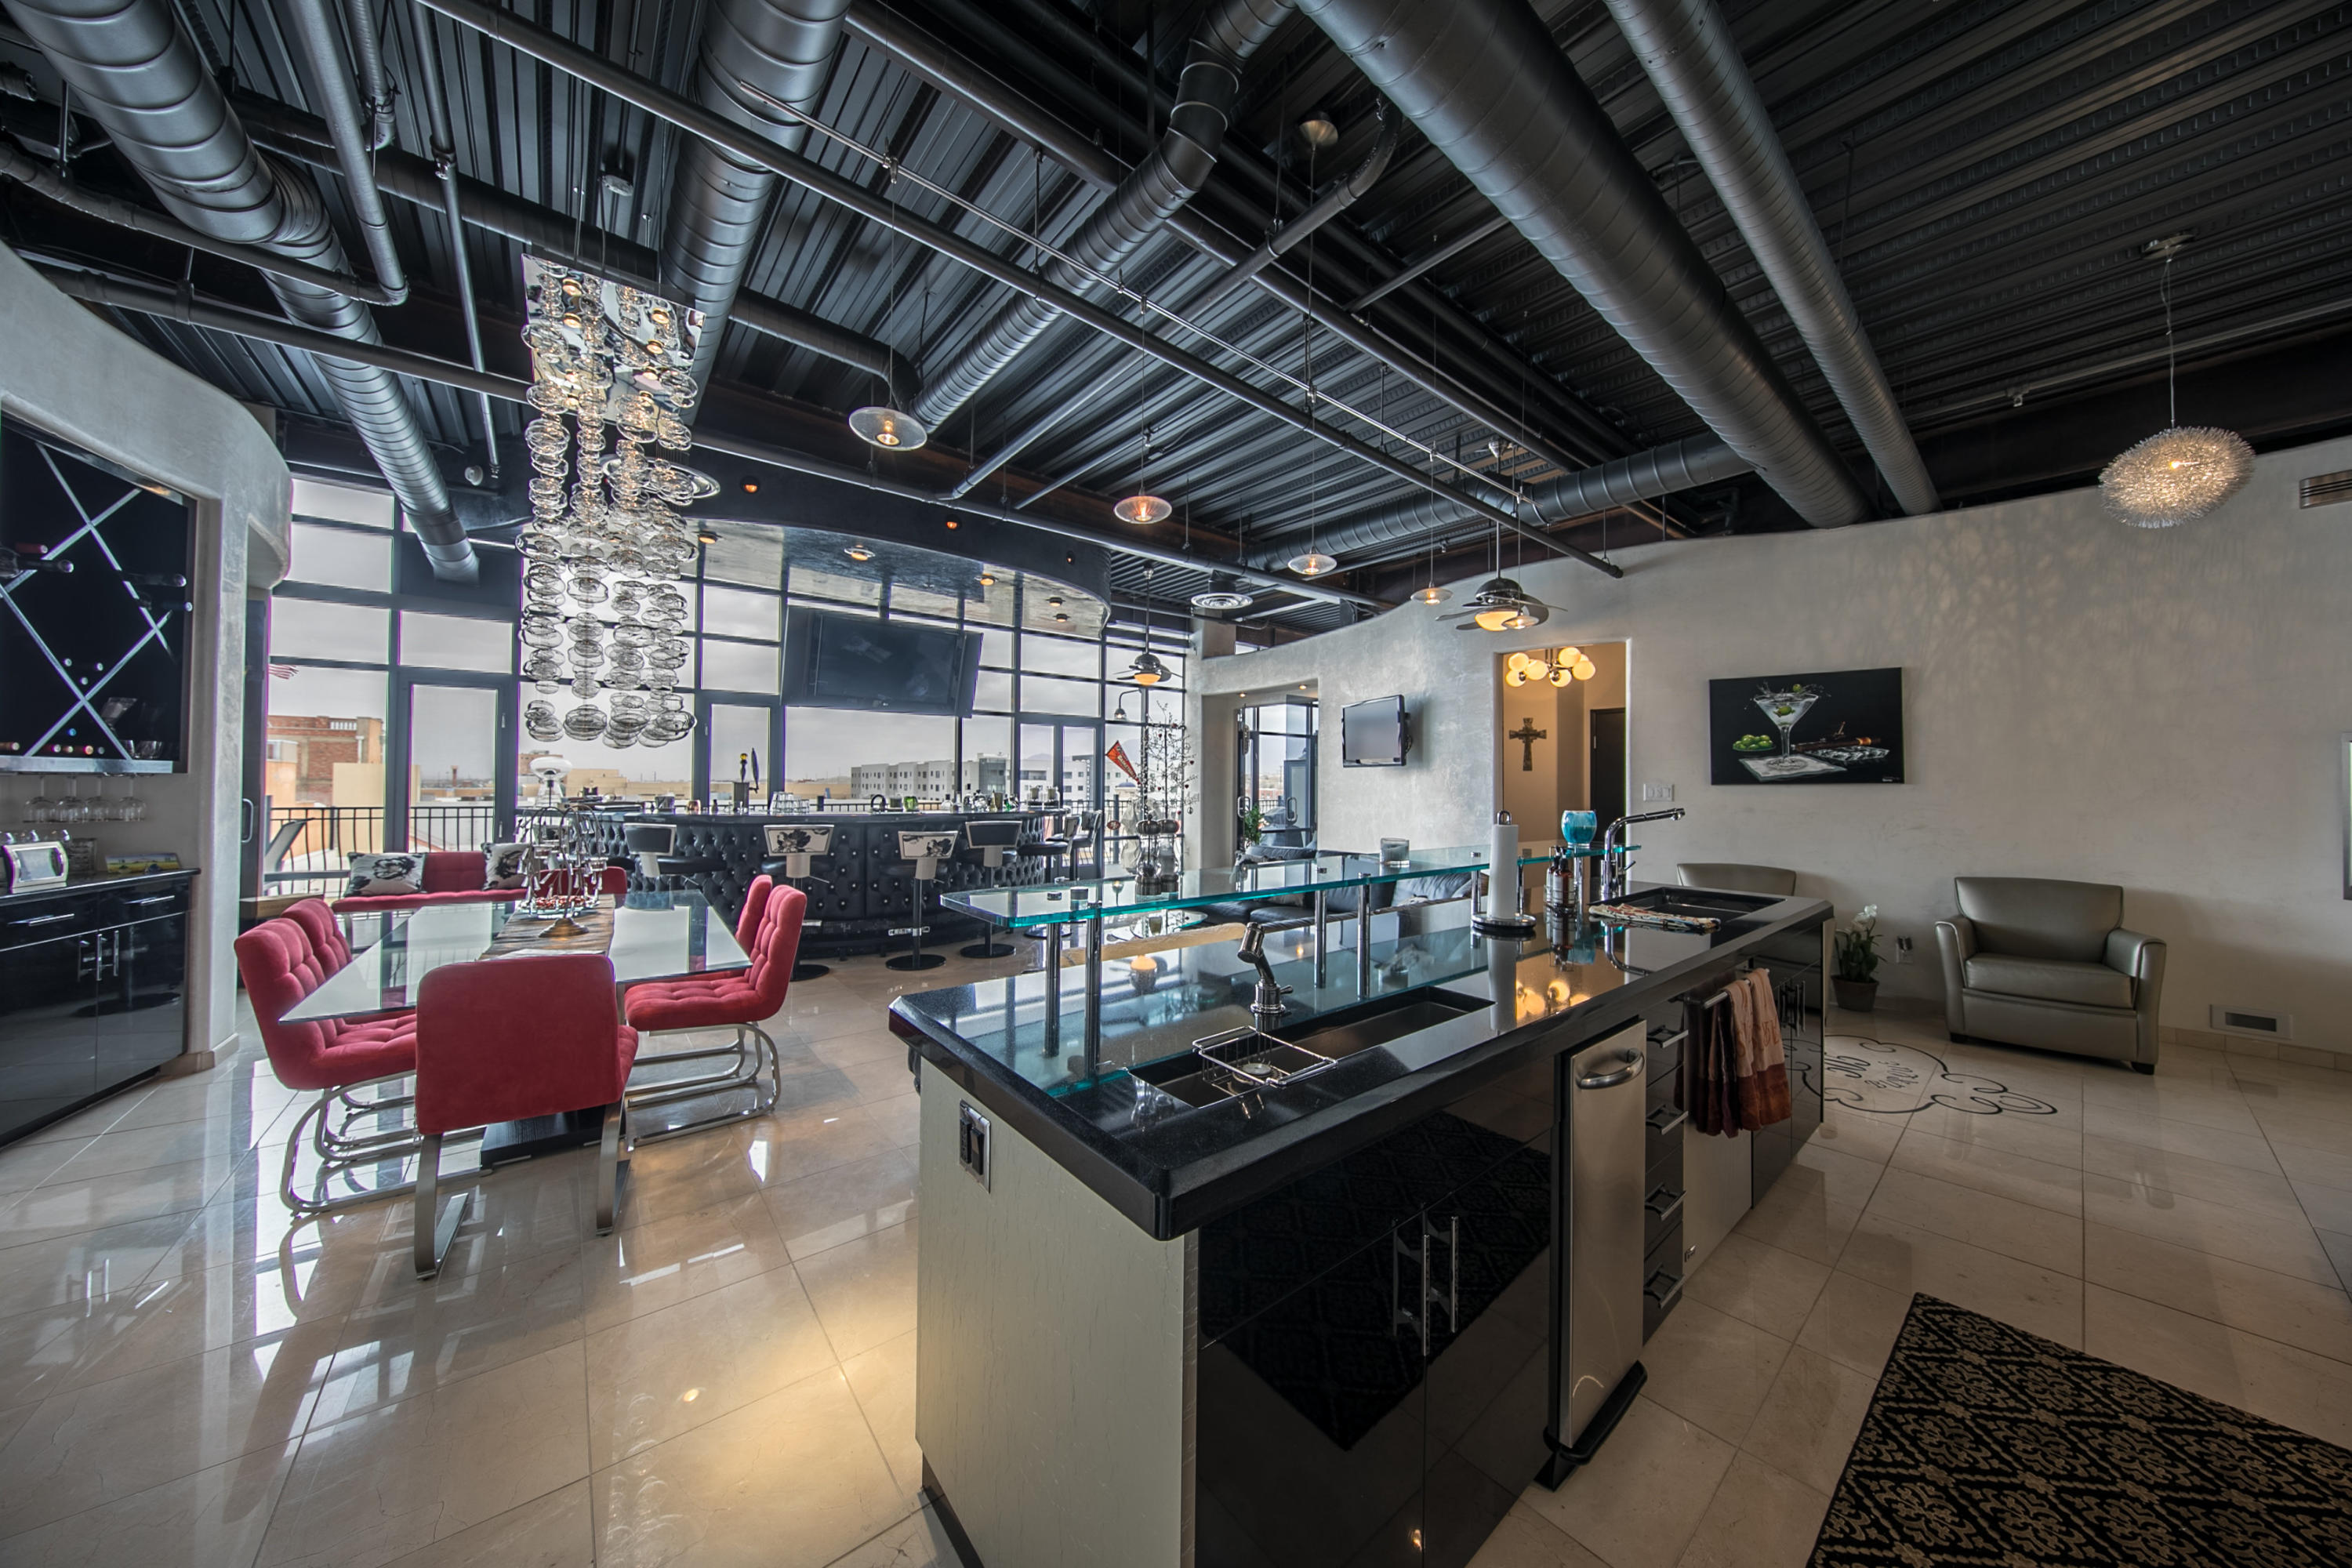 You will love the city life in this upscale luxurious custom loft.This exquisite property is located on the 5th floor at 100 Gold Ave. It offers amazing views from every room and has an extended balcony, absolutely gorgeous custom details that include granite counters floor to ceiling windows custom designed bar, custom cabinets, 2 bedroom and so much more. Call for your private tour to this exclusive property.